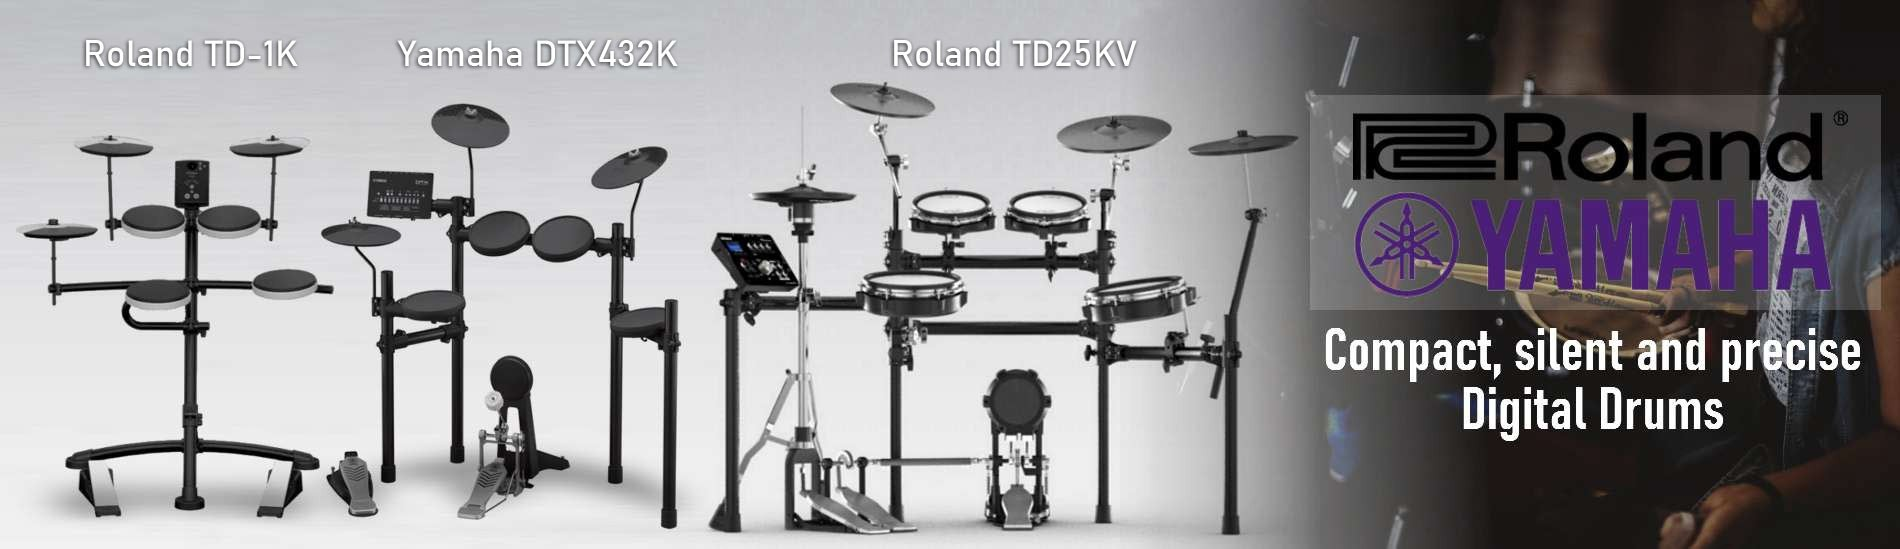 Compact, silent and precise Digital Drums